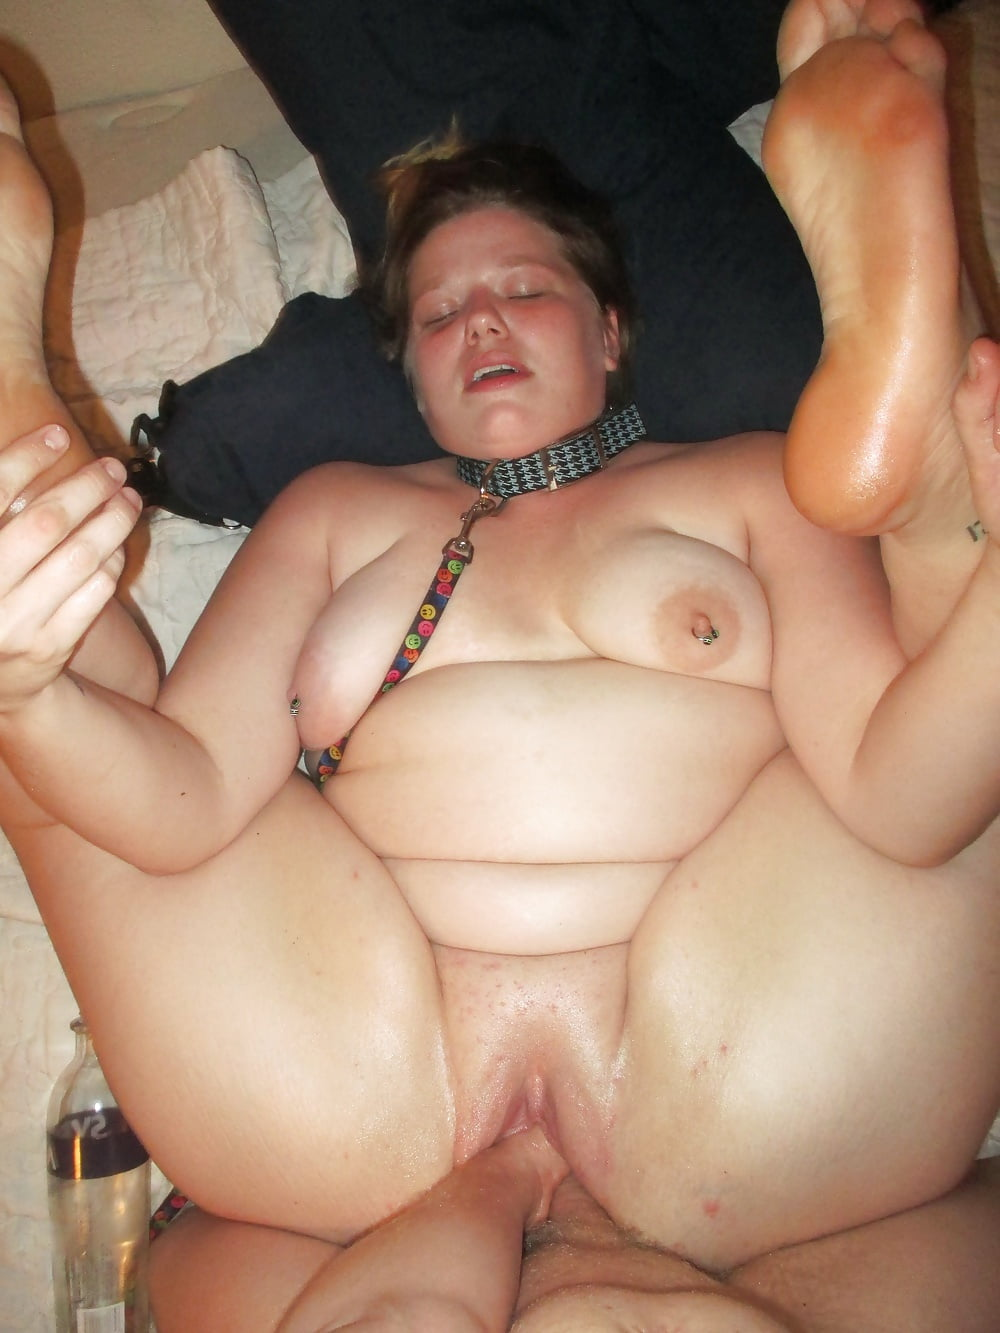 Free ameture bbw porn, chubby chicks naked